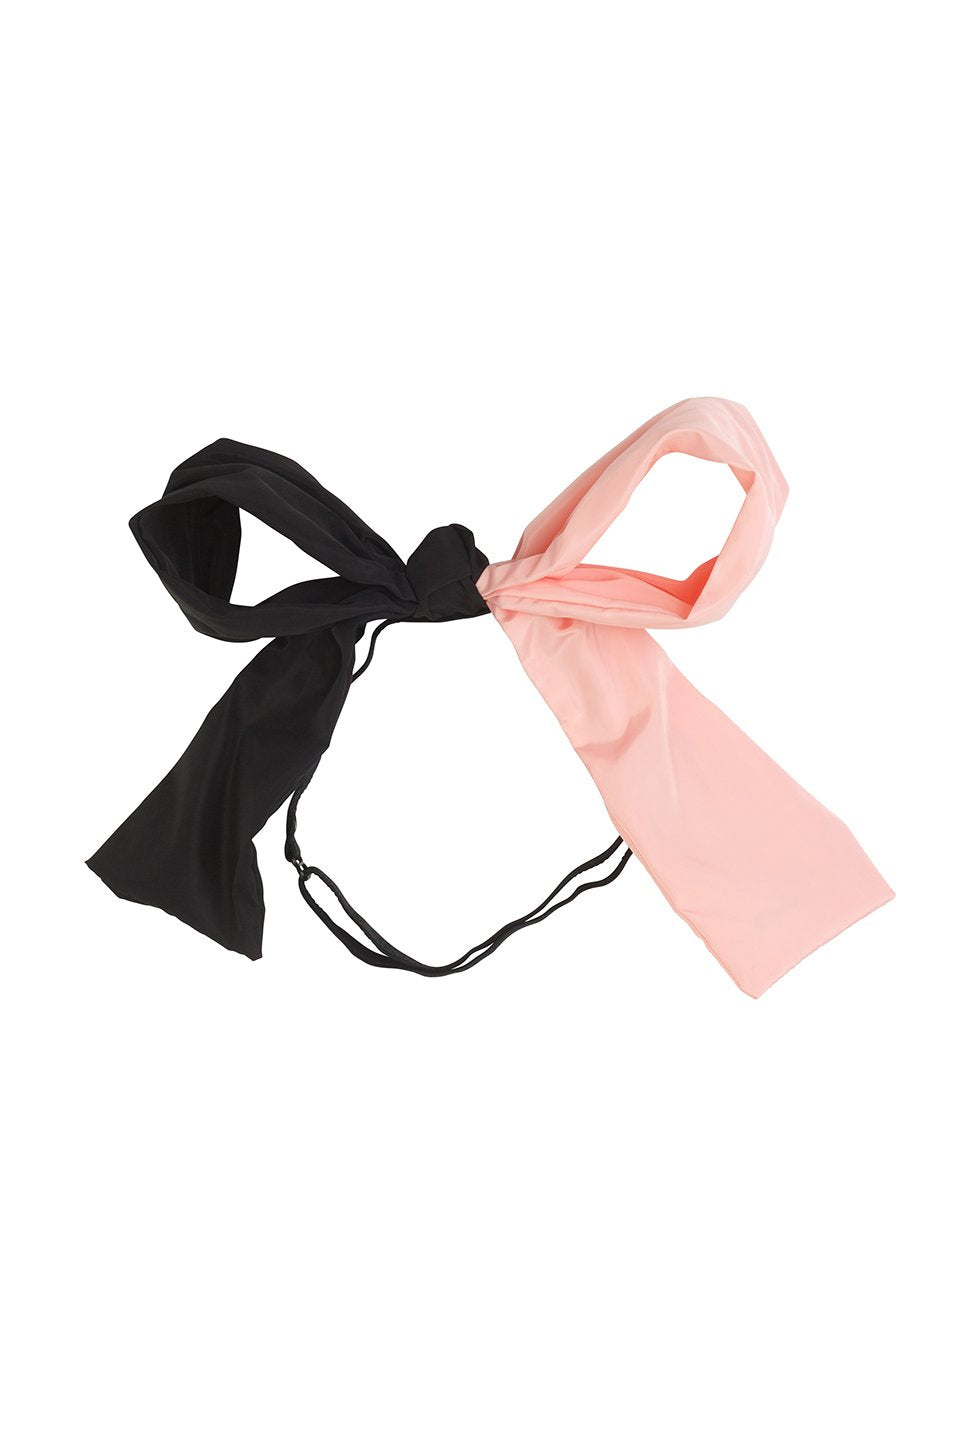 Sia Wrap - Blush/Black - PROJECT 6, modest fashion